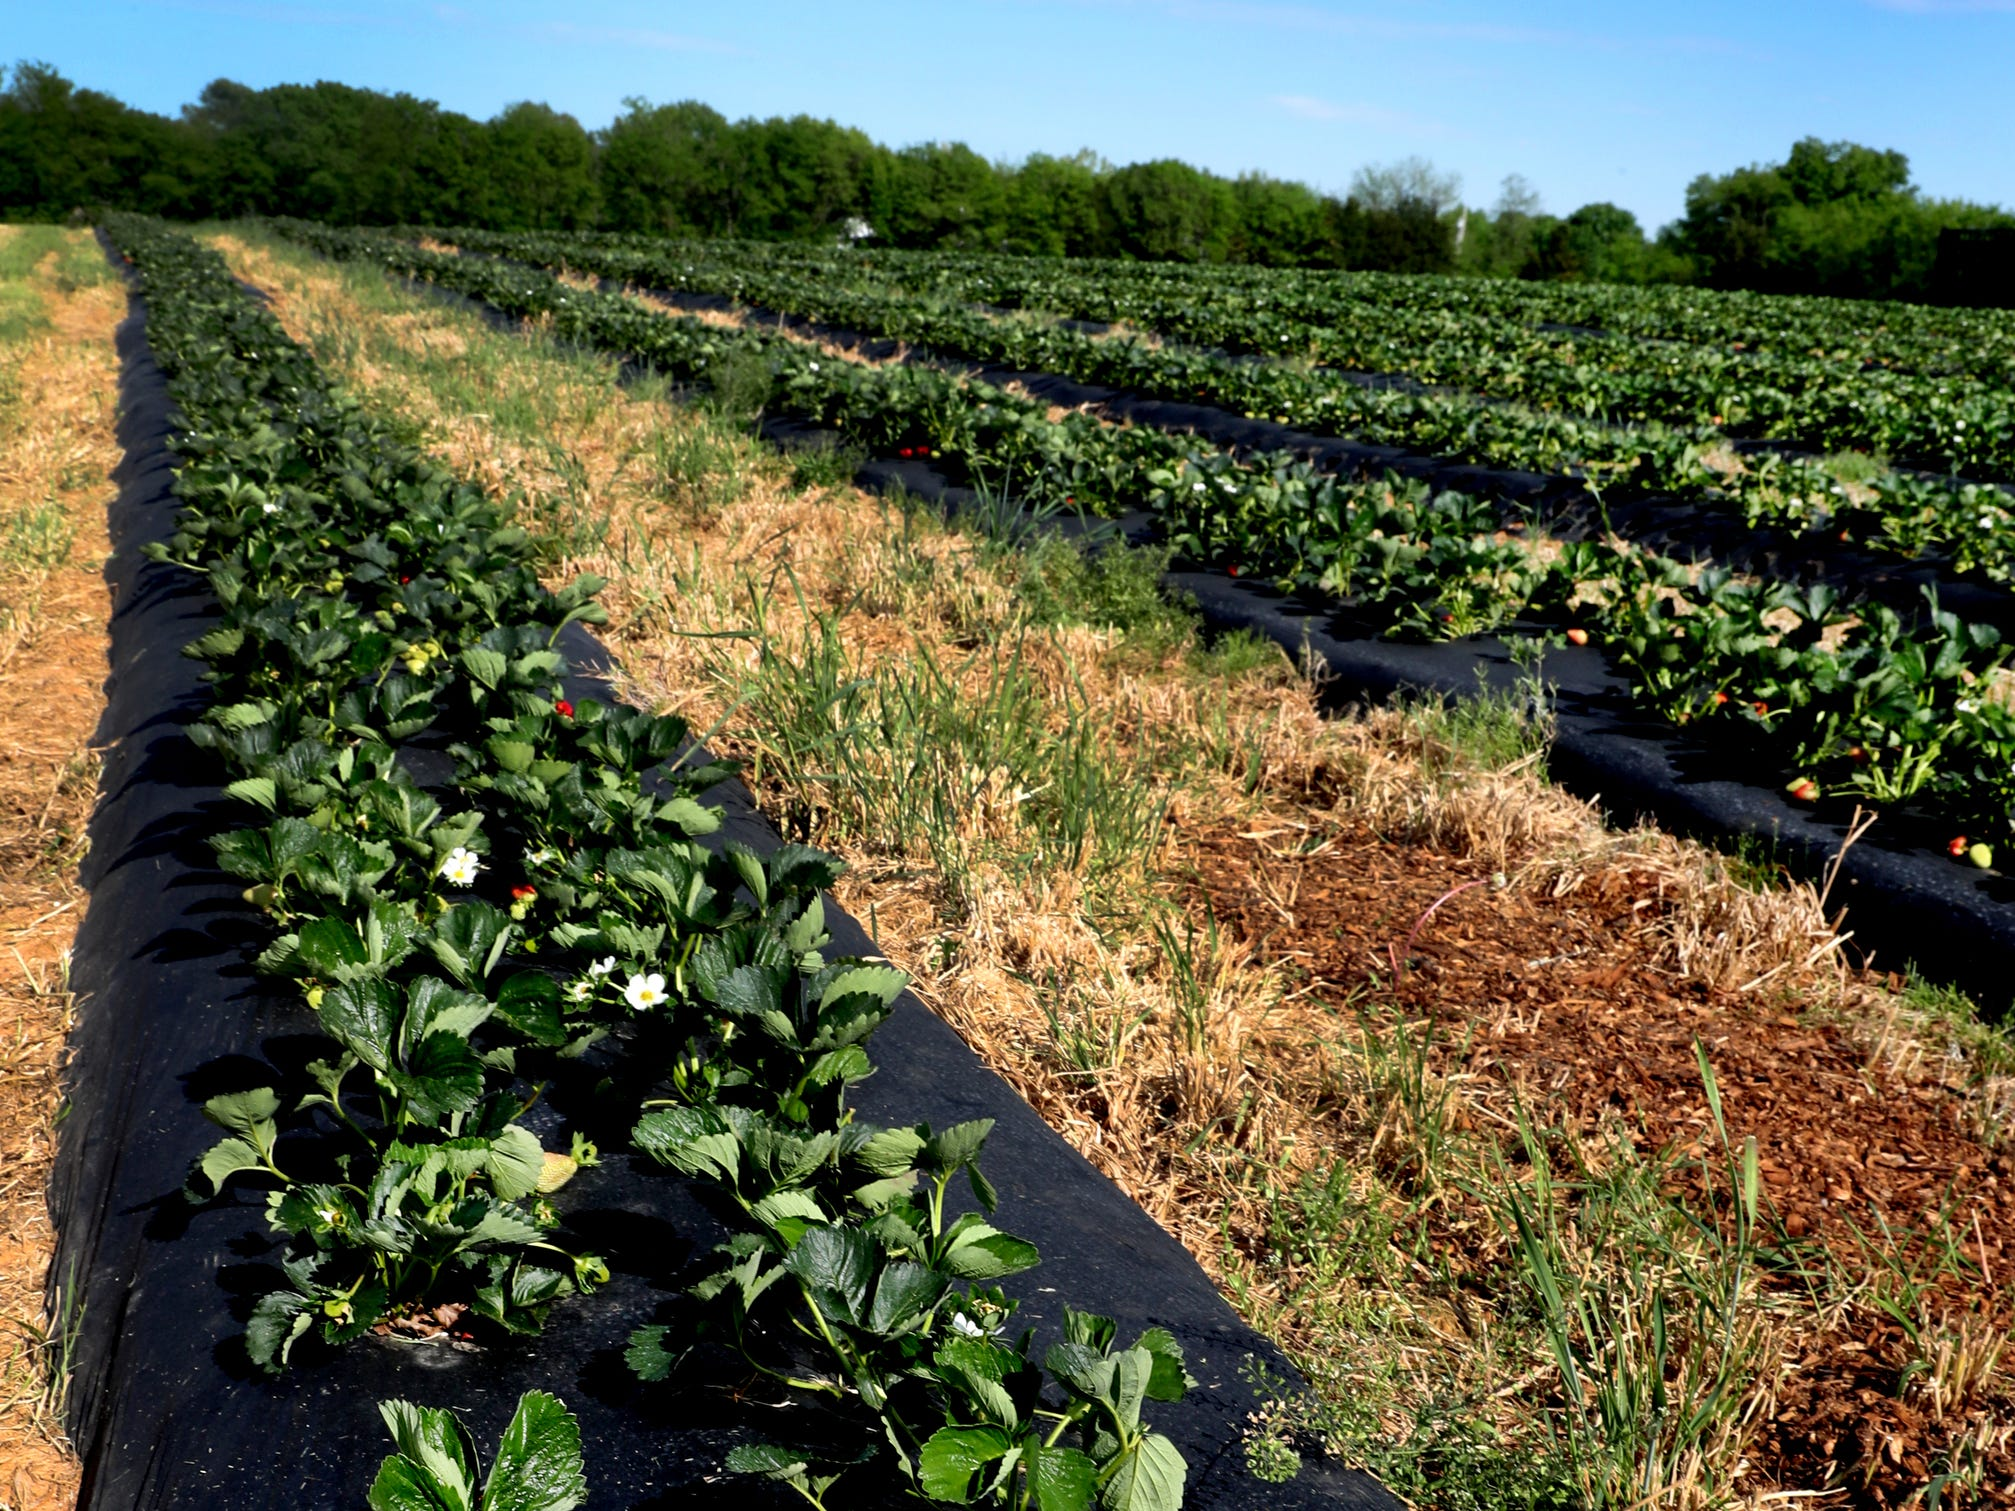 Batey Farms has rows an rows of large fresh strawberries ready to be picked on Wednesday April 24, 2019, at the 5331 Baker Road location in the Blackman area.